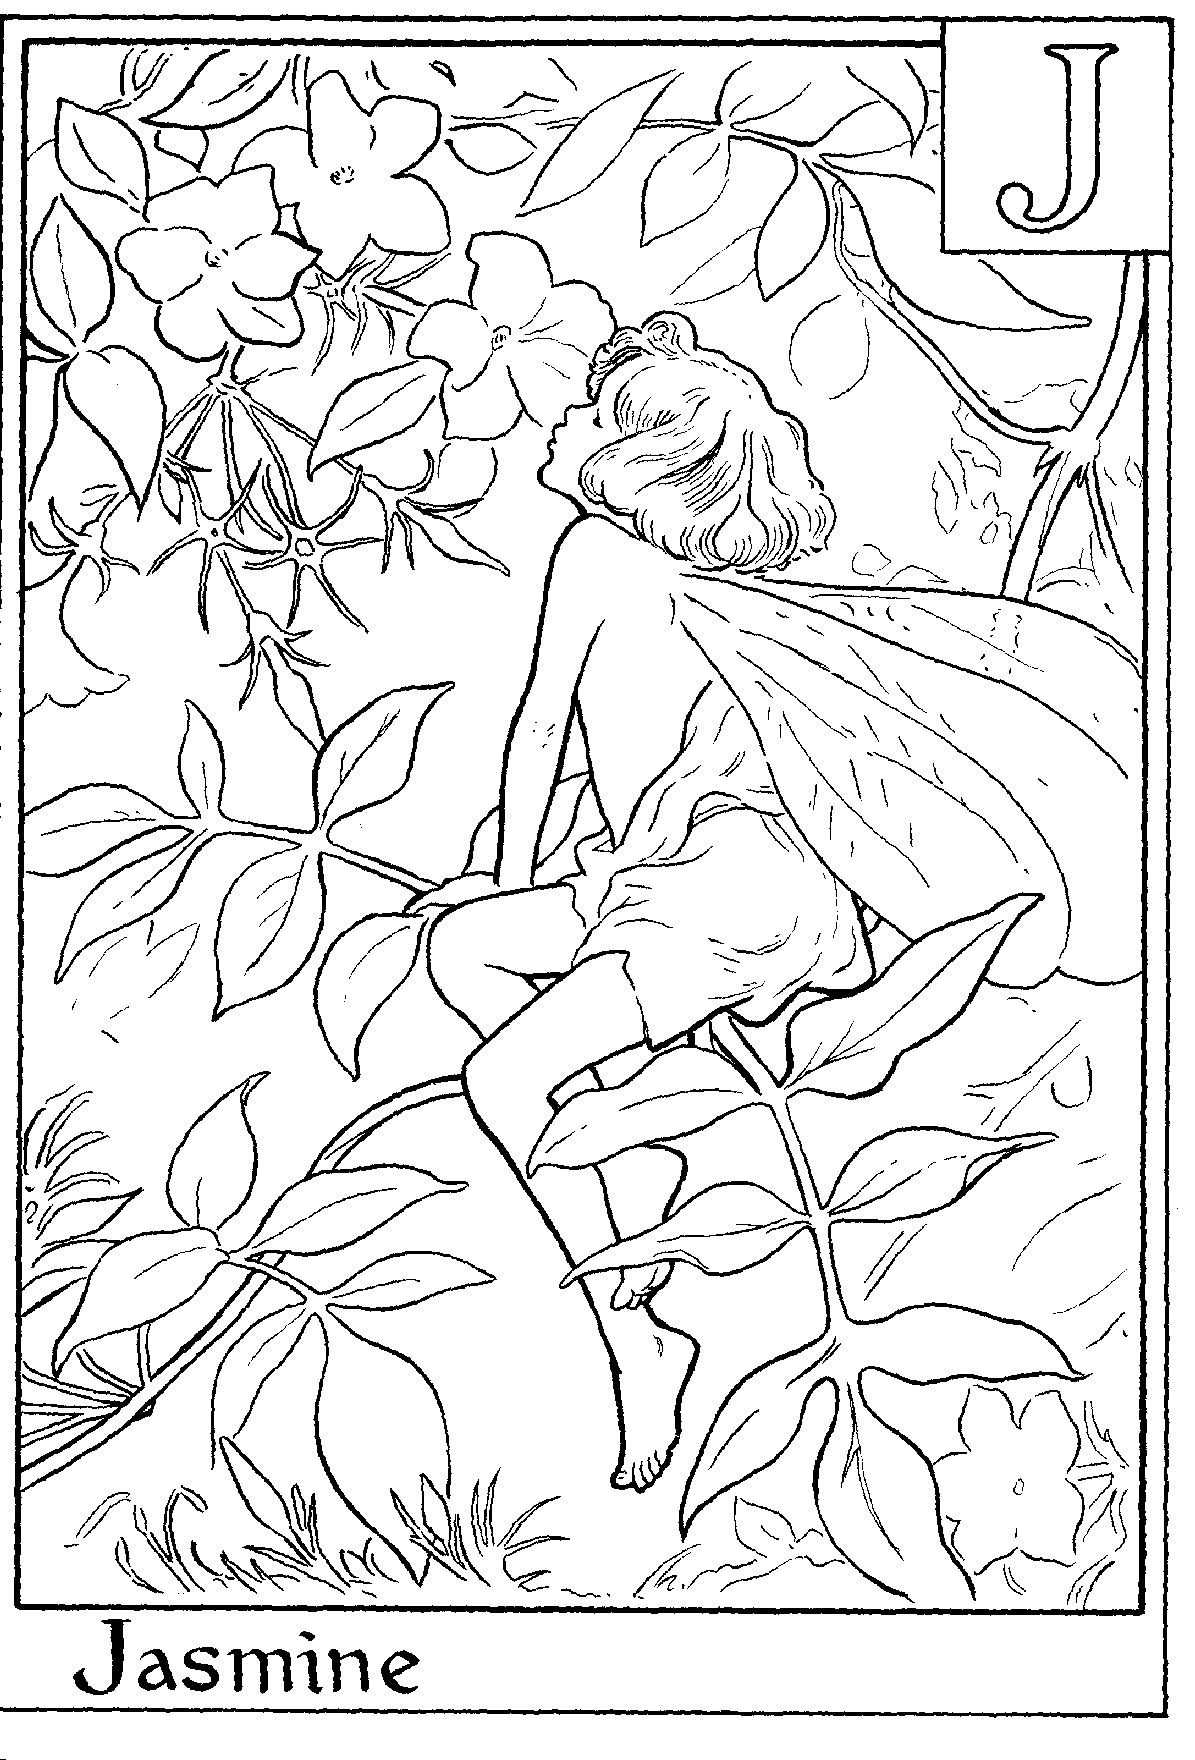 Jasmine flower coloring pages for Coloring pages jasmine